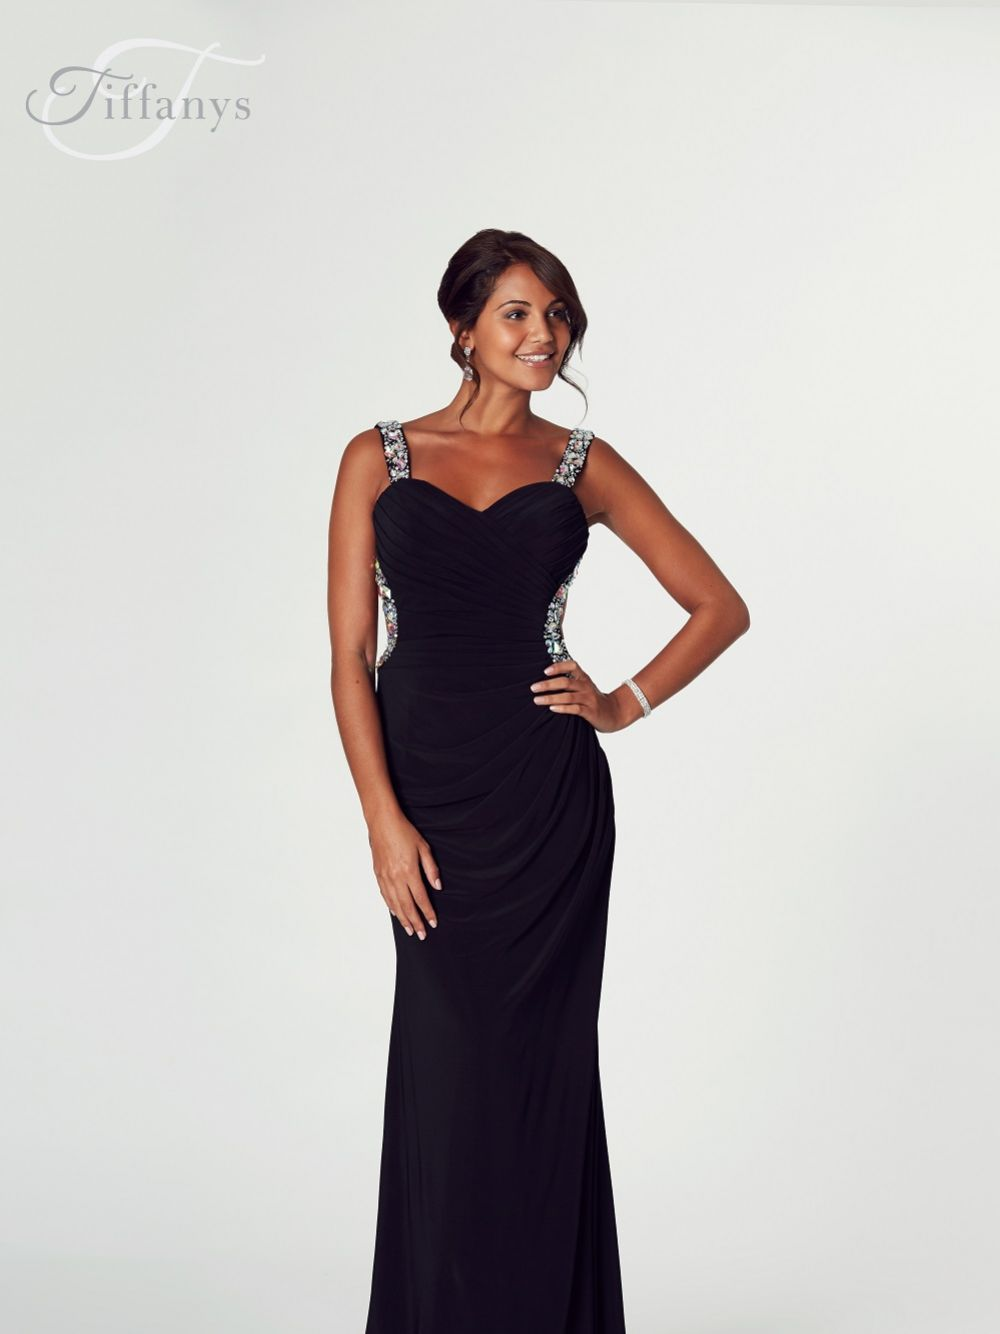 Tiffanys Illusion Prom Giana Ruched Jersey Backless Prom Dress